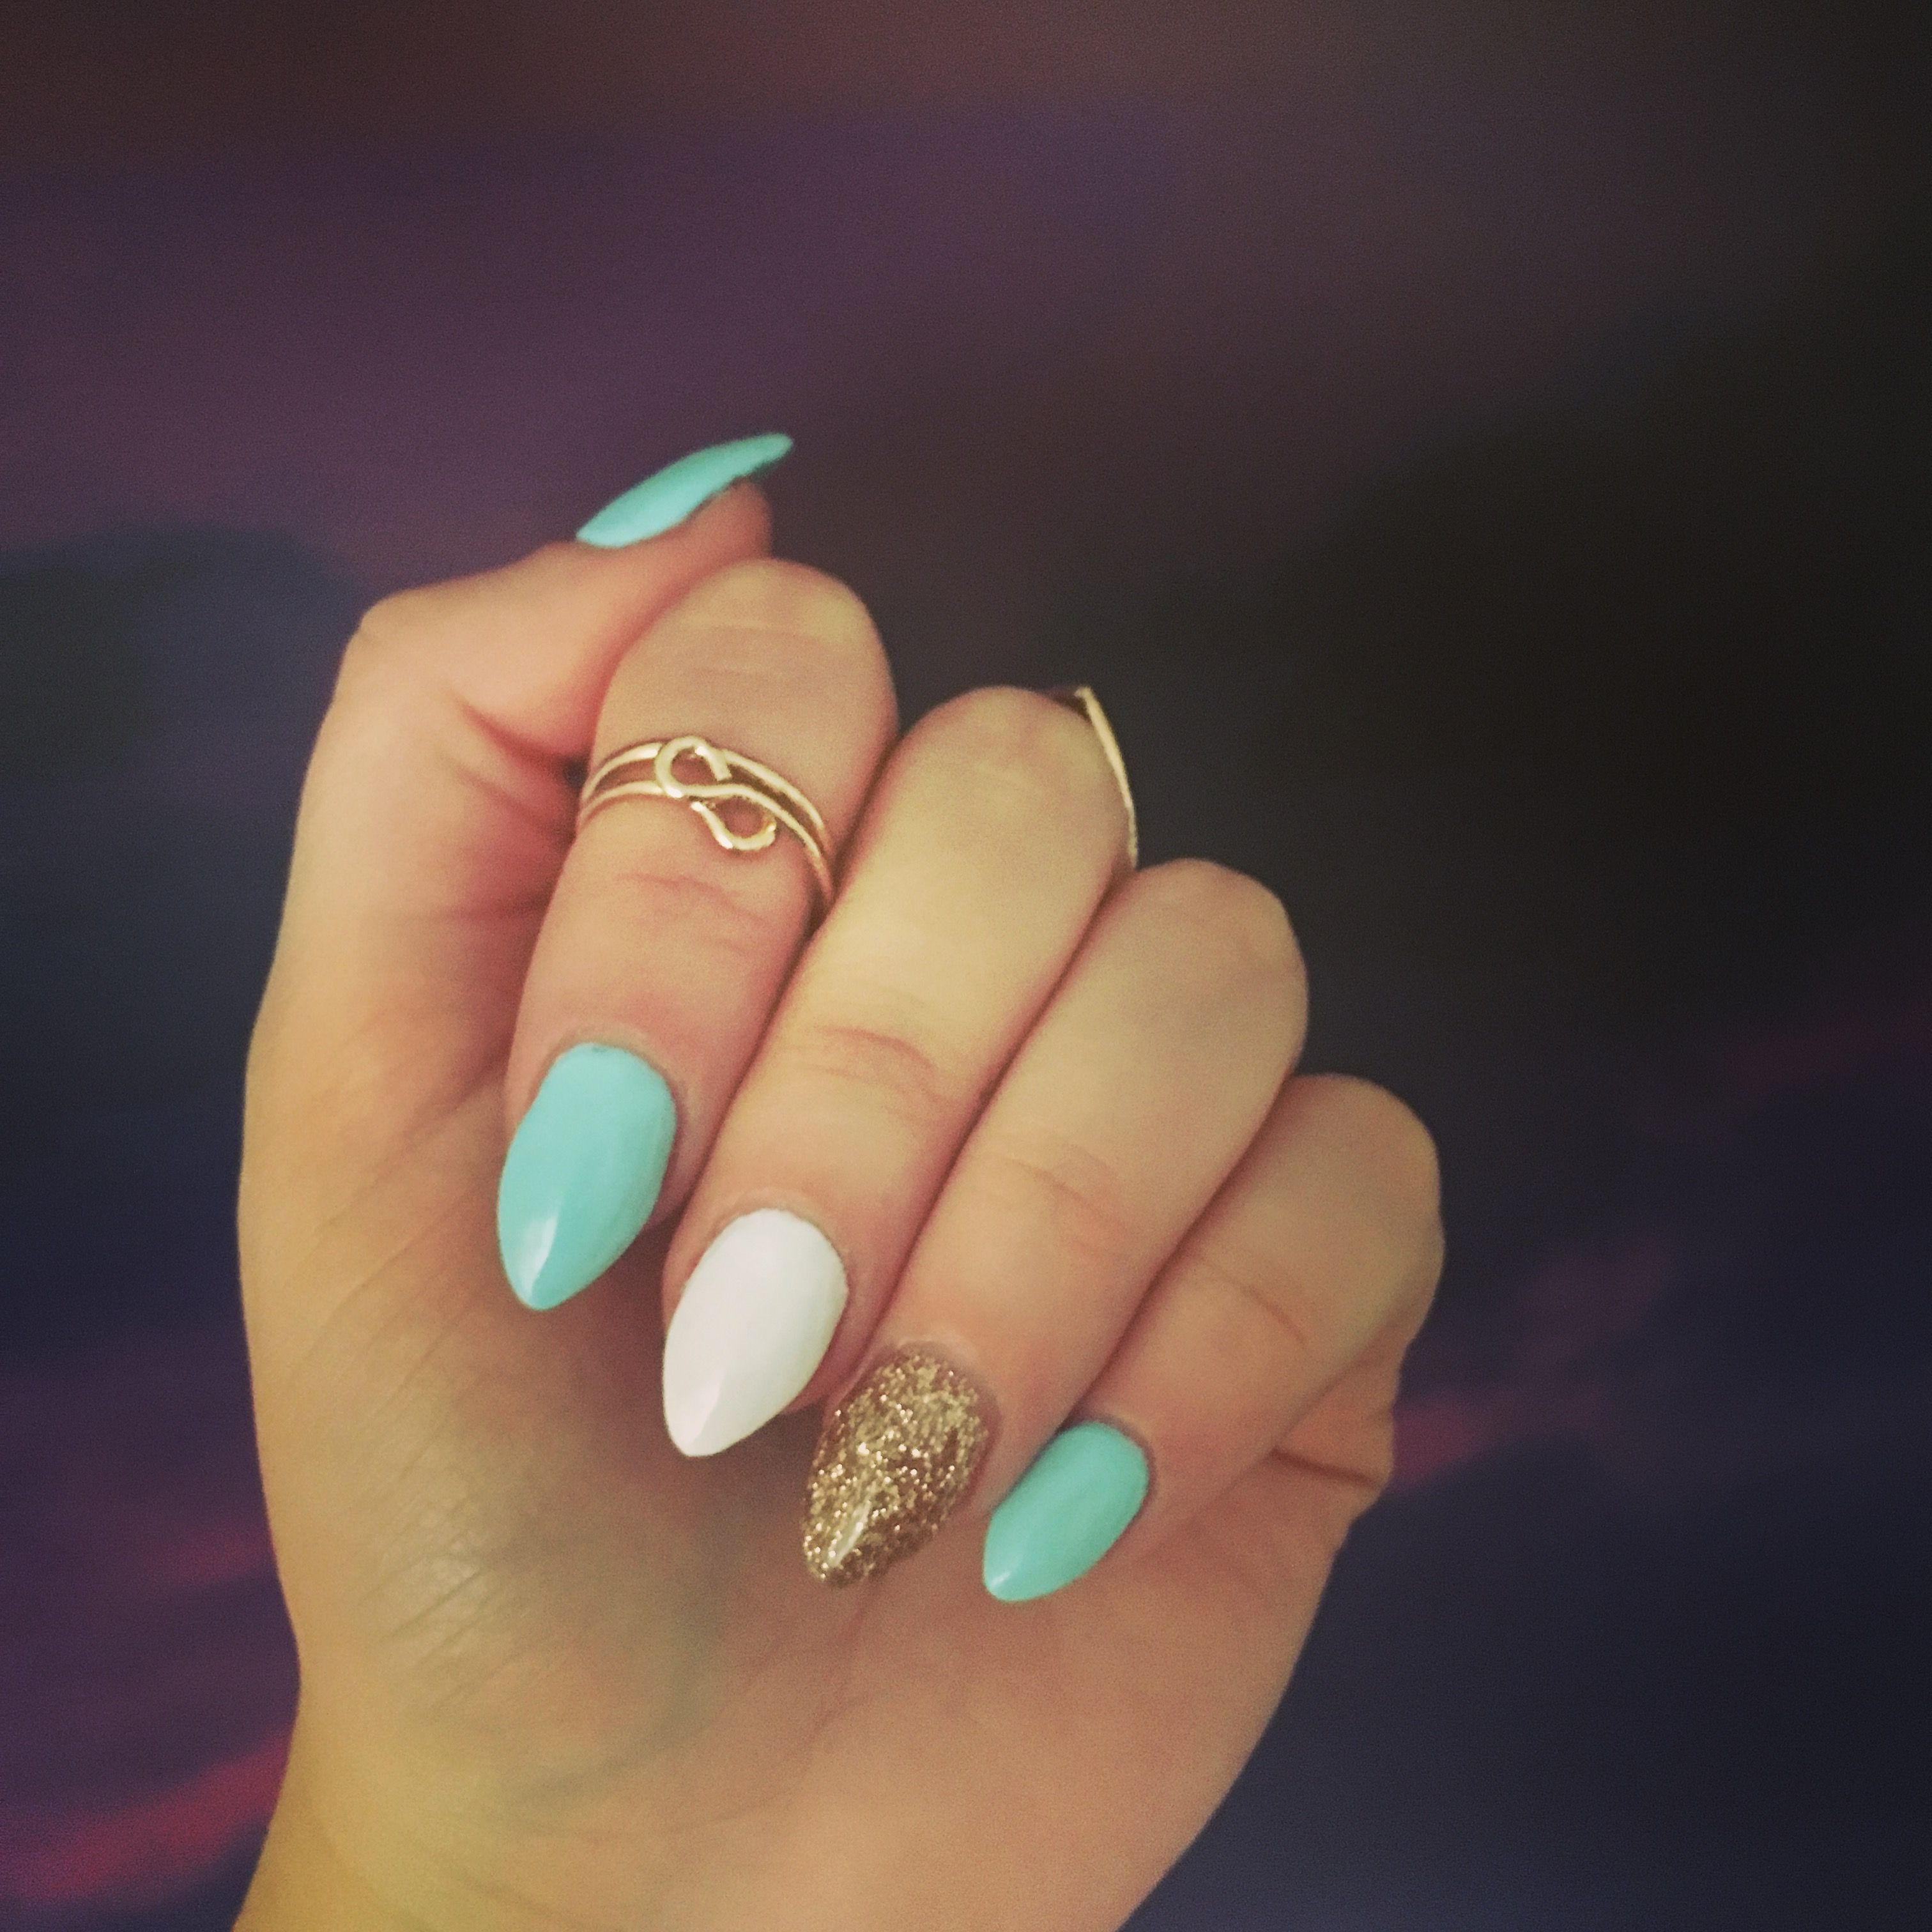 Almond Shape Nails White And Gold Almond Shape Nails Almond Nails White Nails